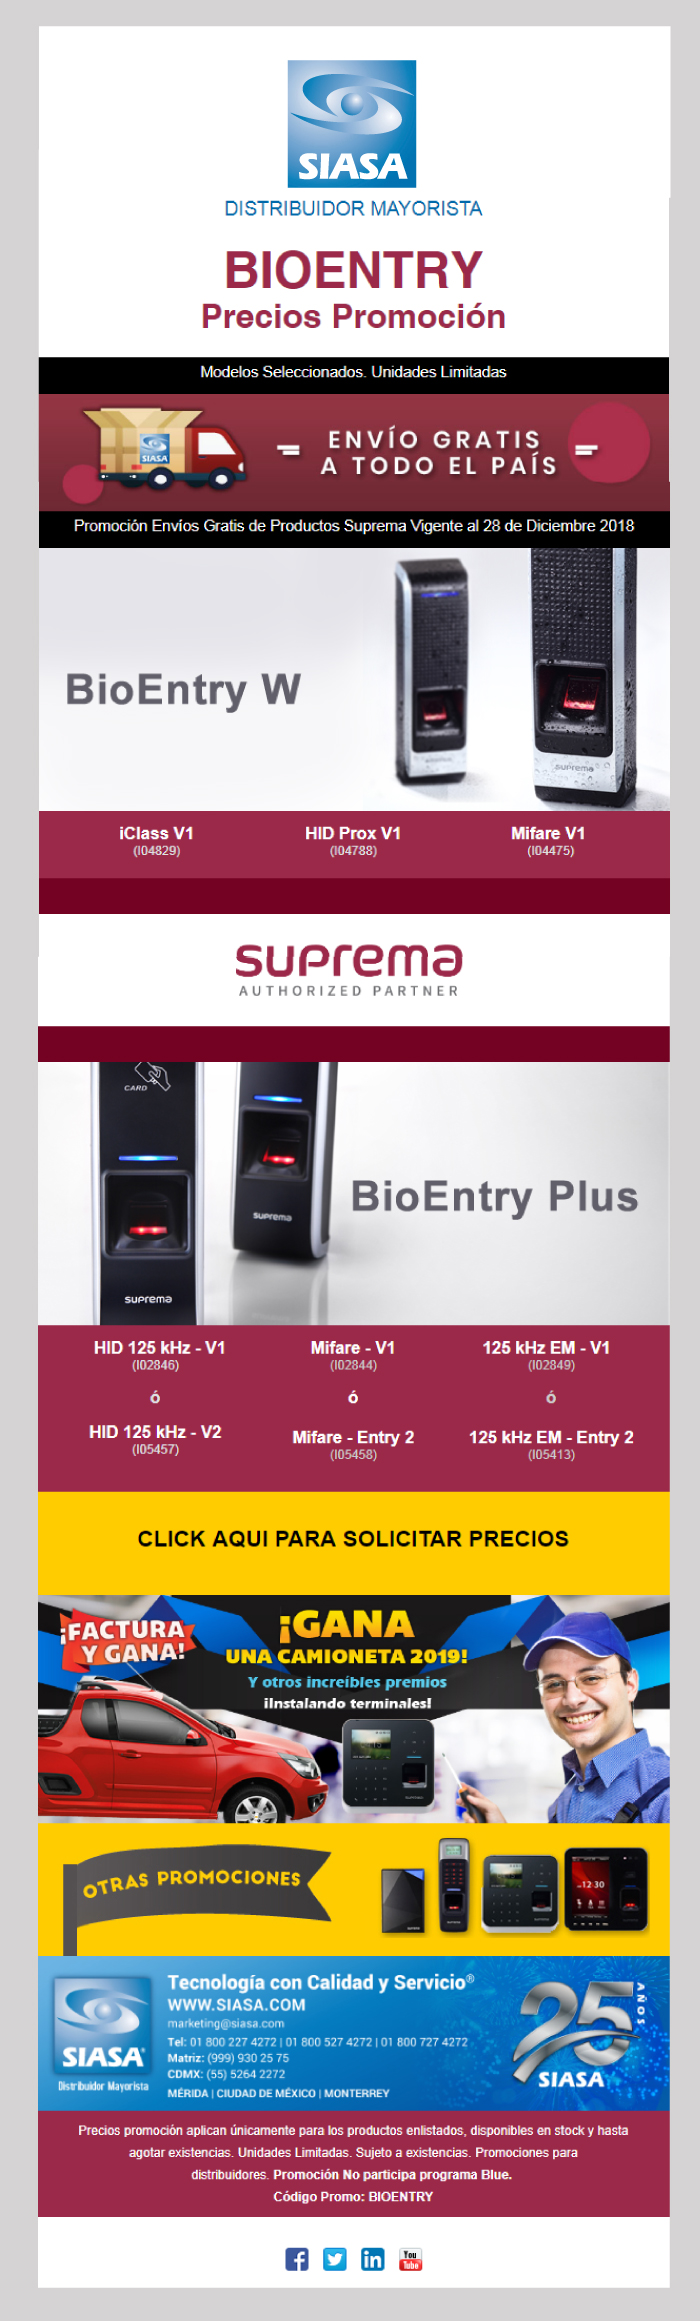 PRODUCTOS BIOENTRY SUPREMA